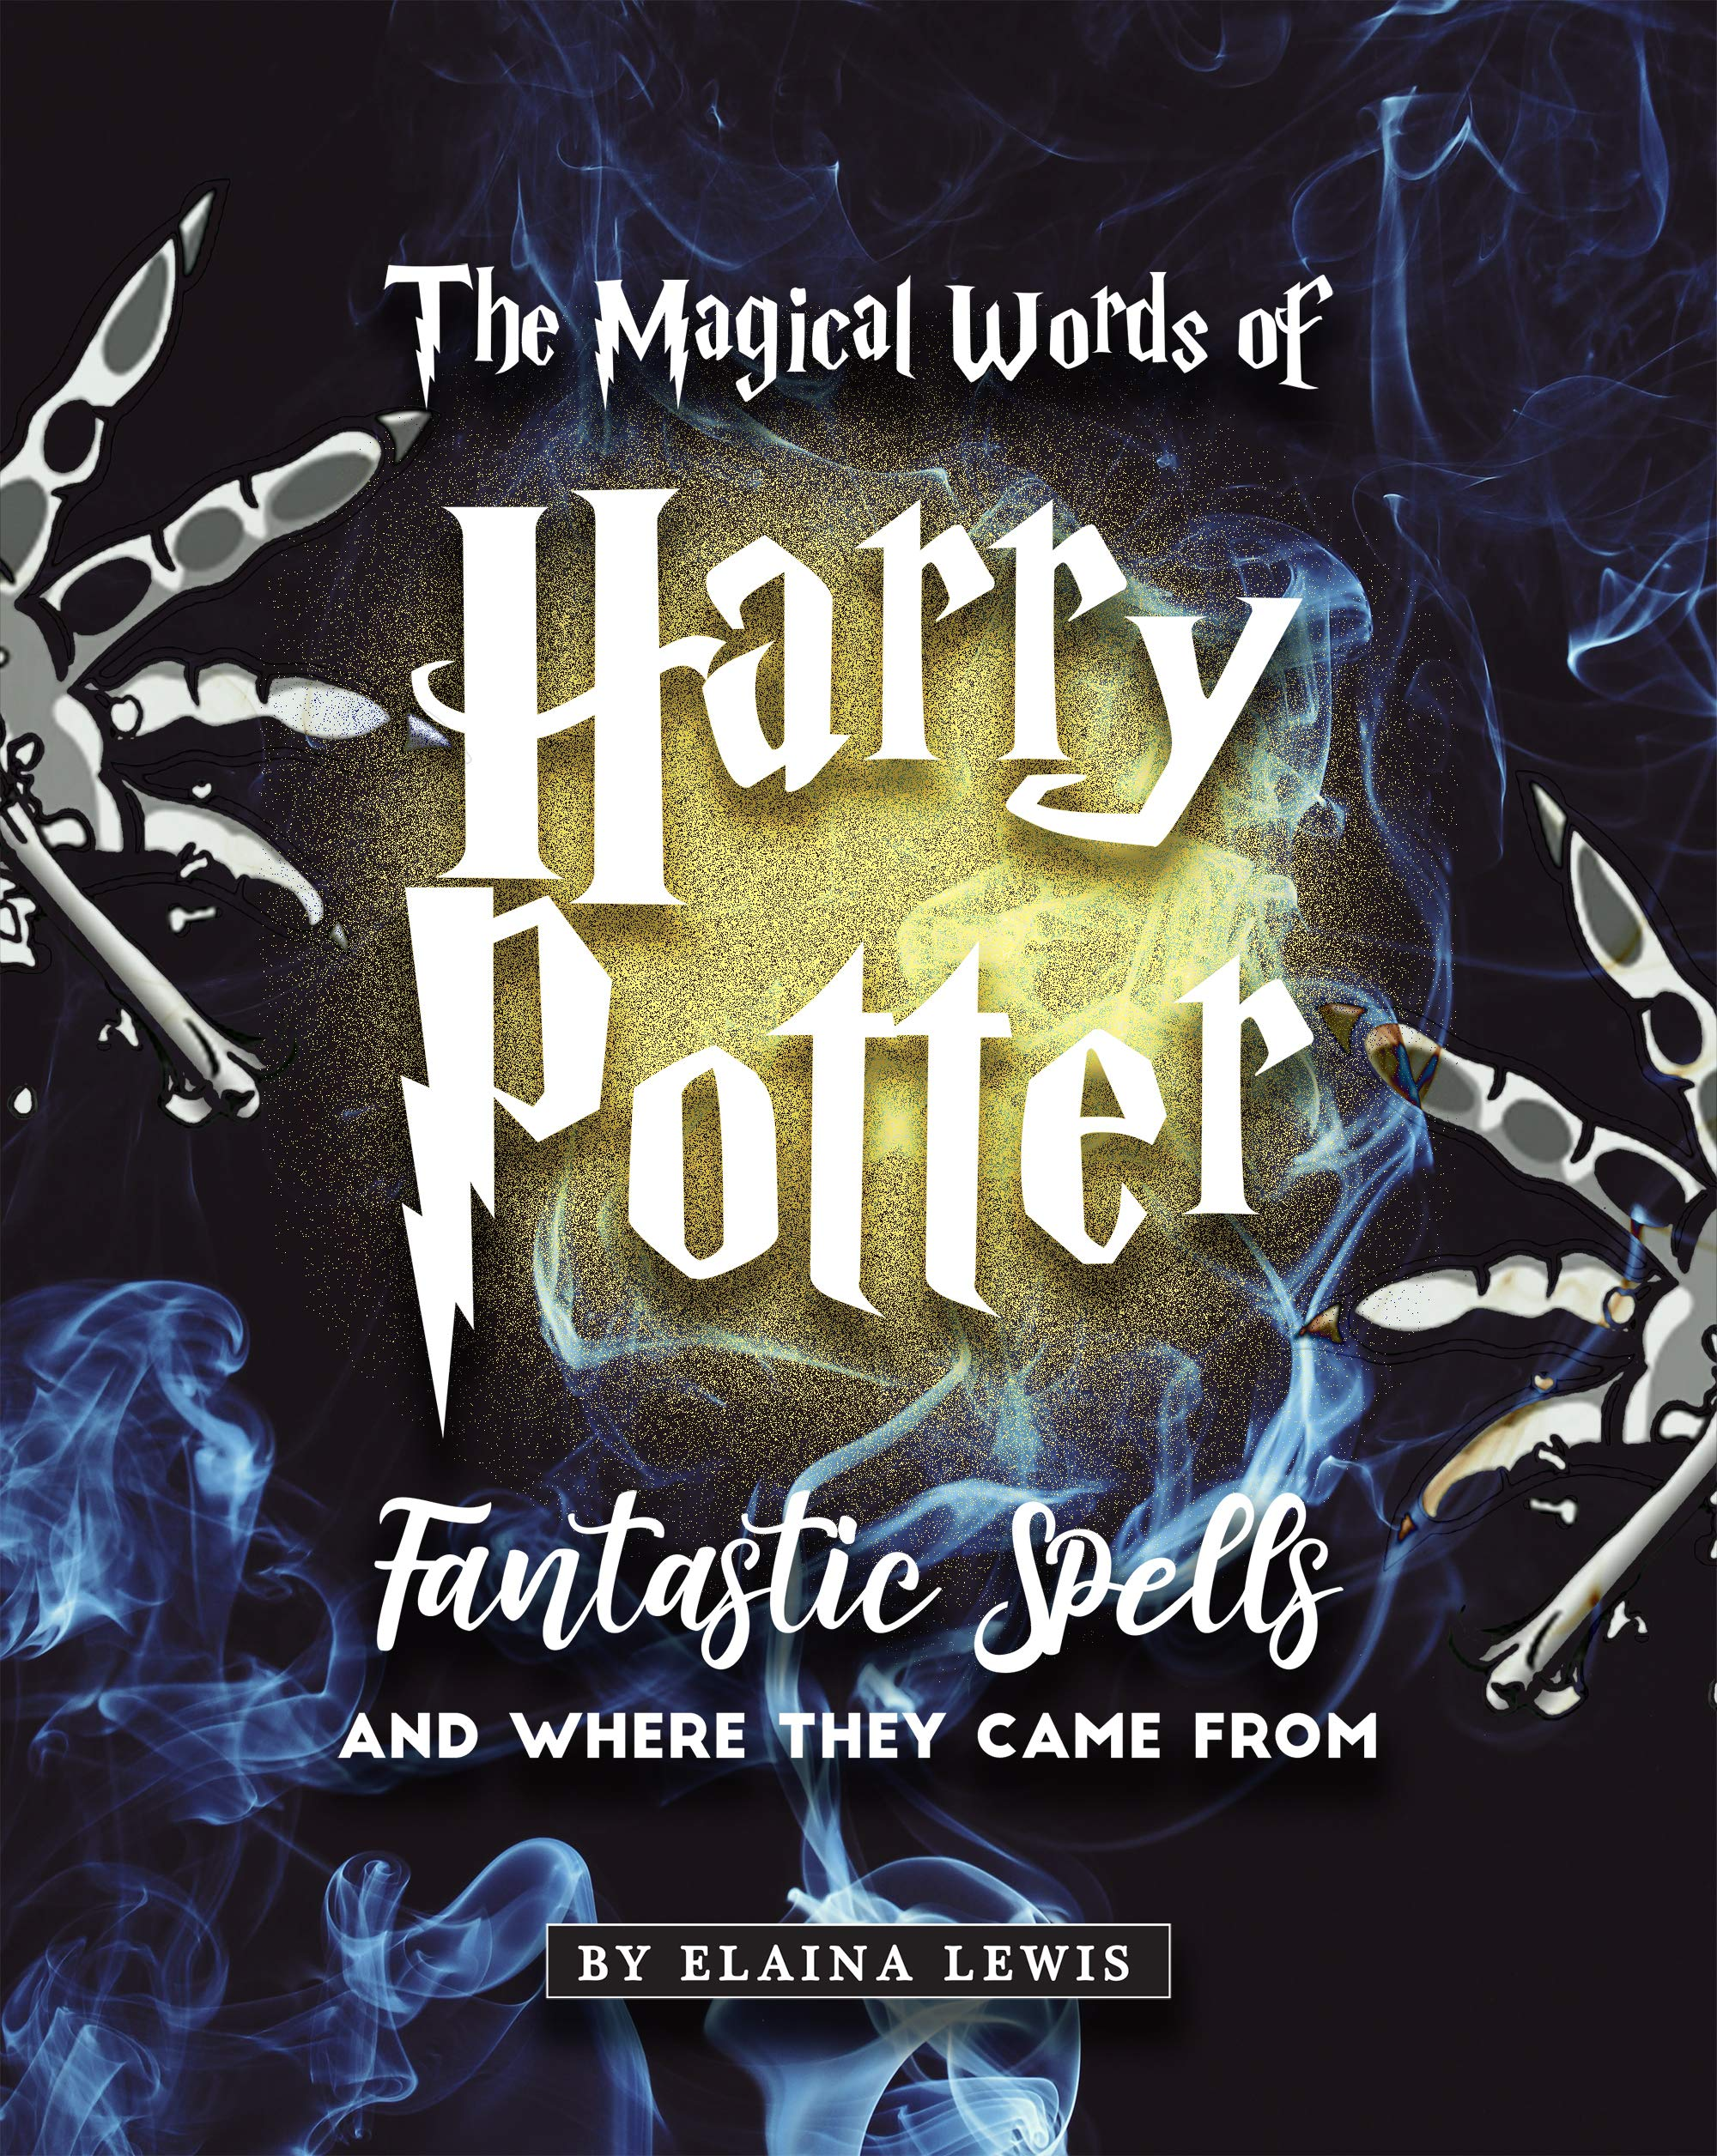 The Magical Words of Harry Potter: Fantastic Spells and Where They Came From